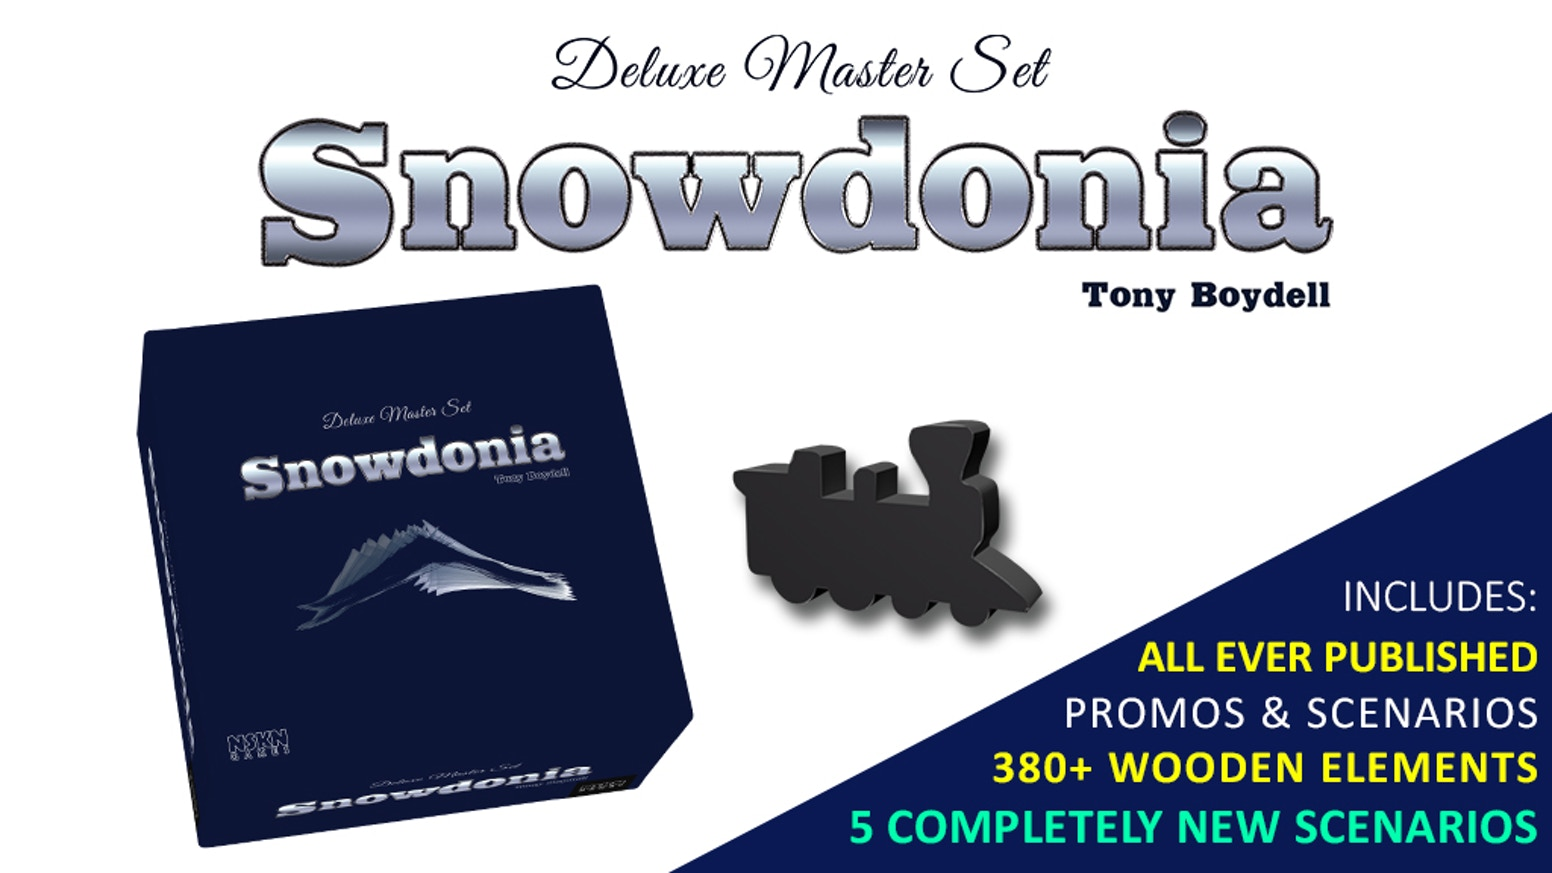 Snowdonia - a lovingly crafted game of strategy, history, and trains - now in an updated and upgraded form of a Deluxe Master Set.